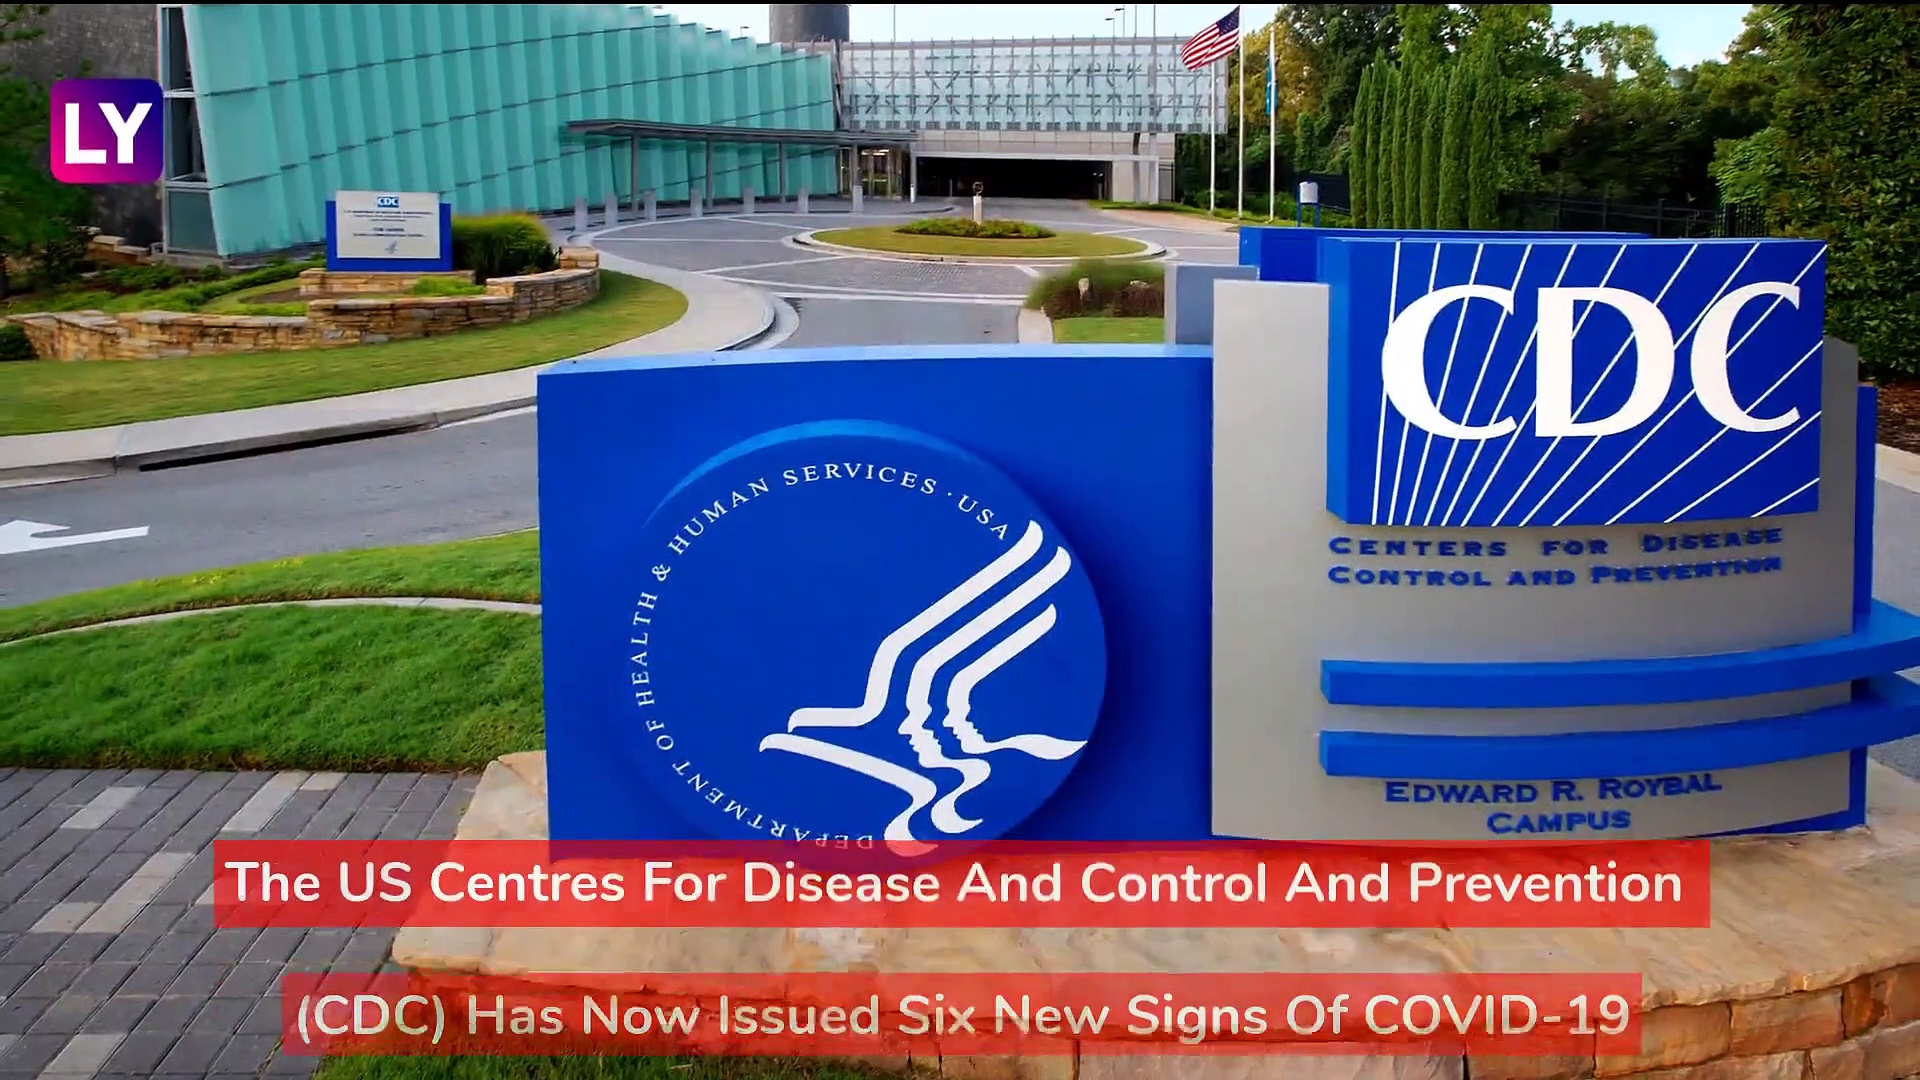 New COVID-19 Symptoms: CDC Lists Chills, Muscle Pain, And Other Signs You Need To Watch Out For!